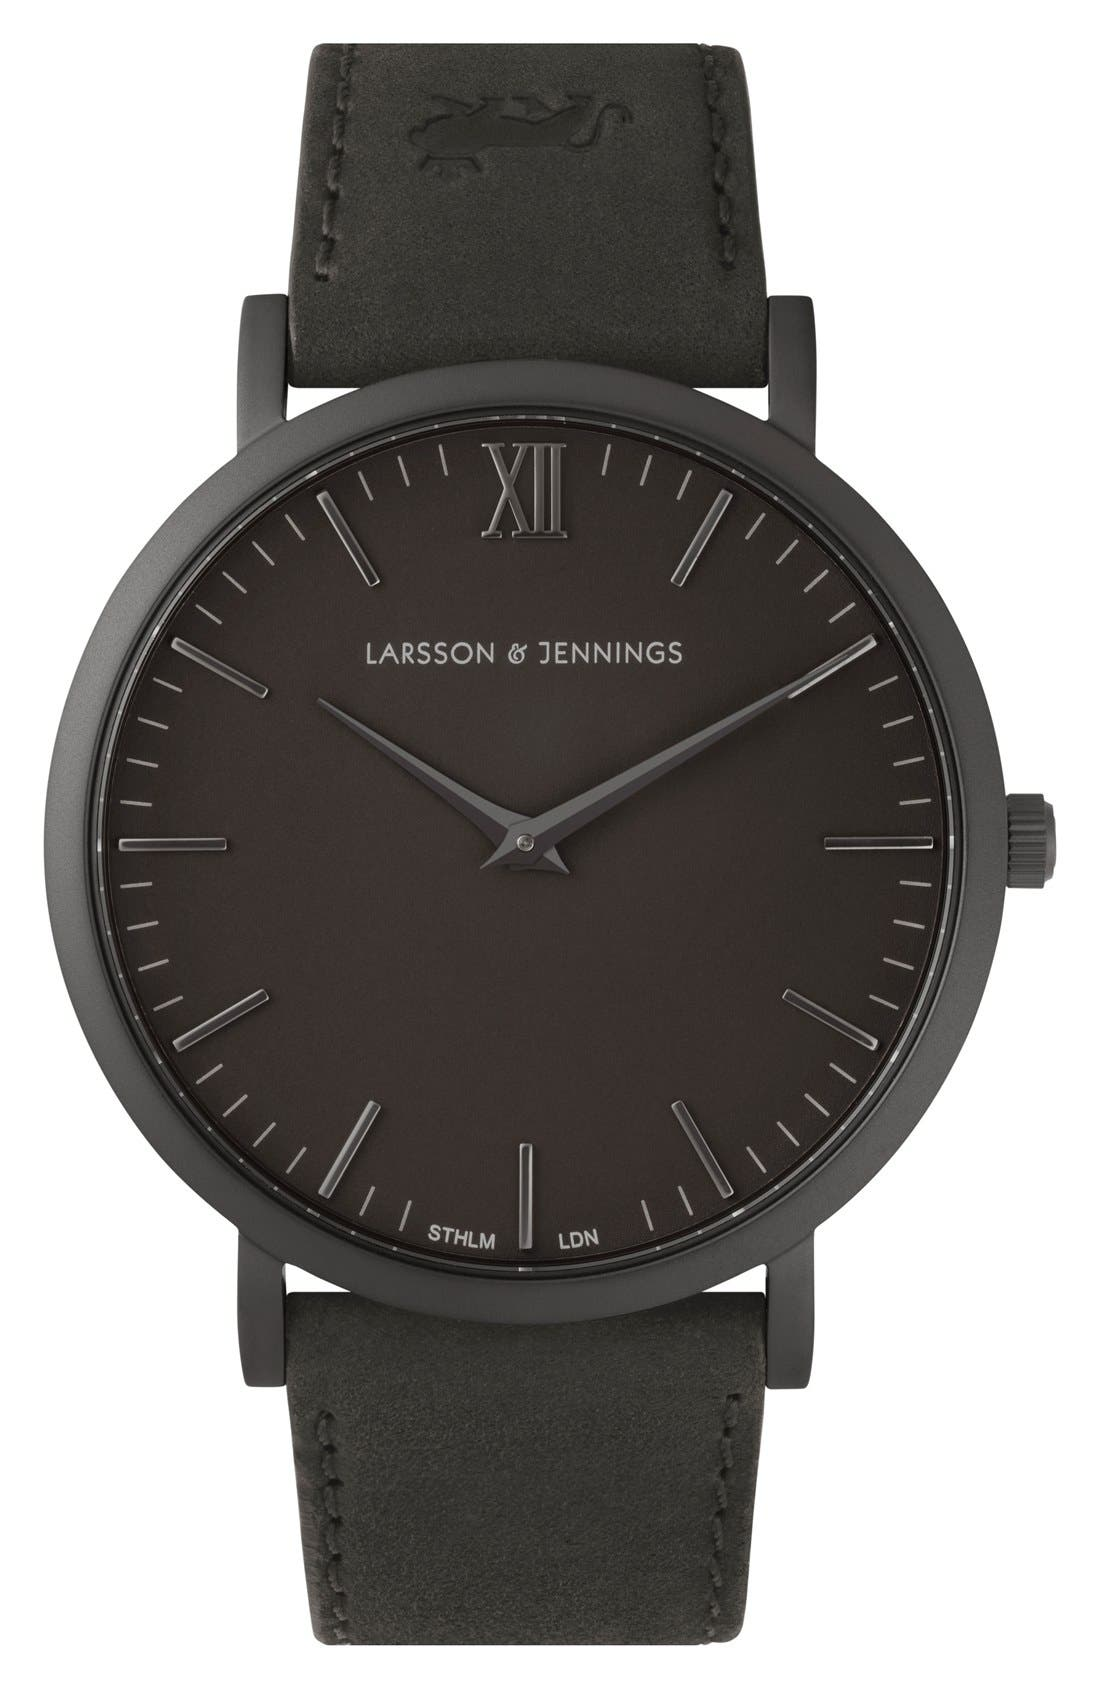 LARSSON & JENNINGS Lugano Leather Strap Watch, 40mm